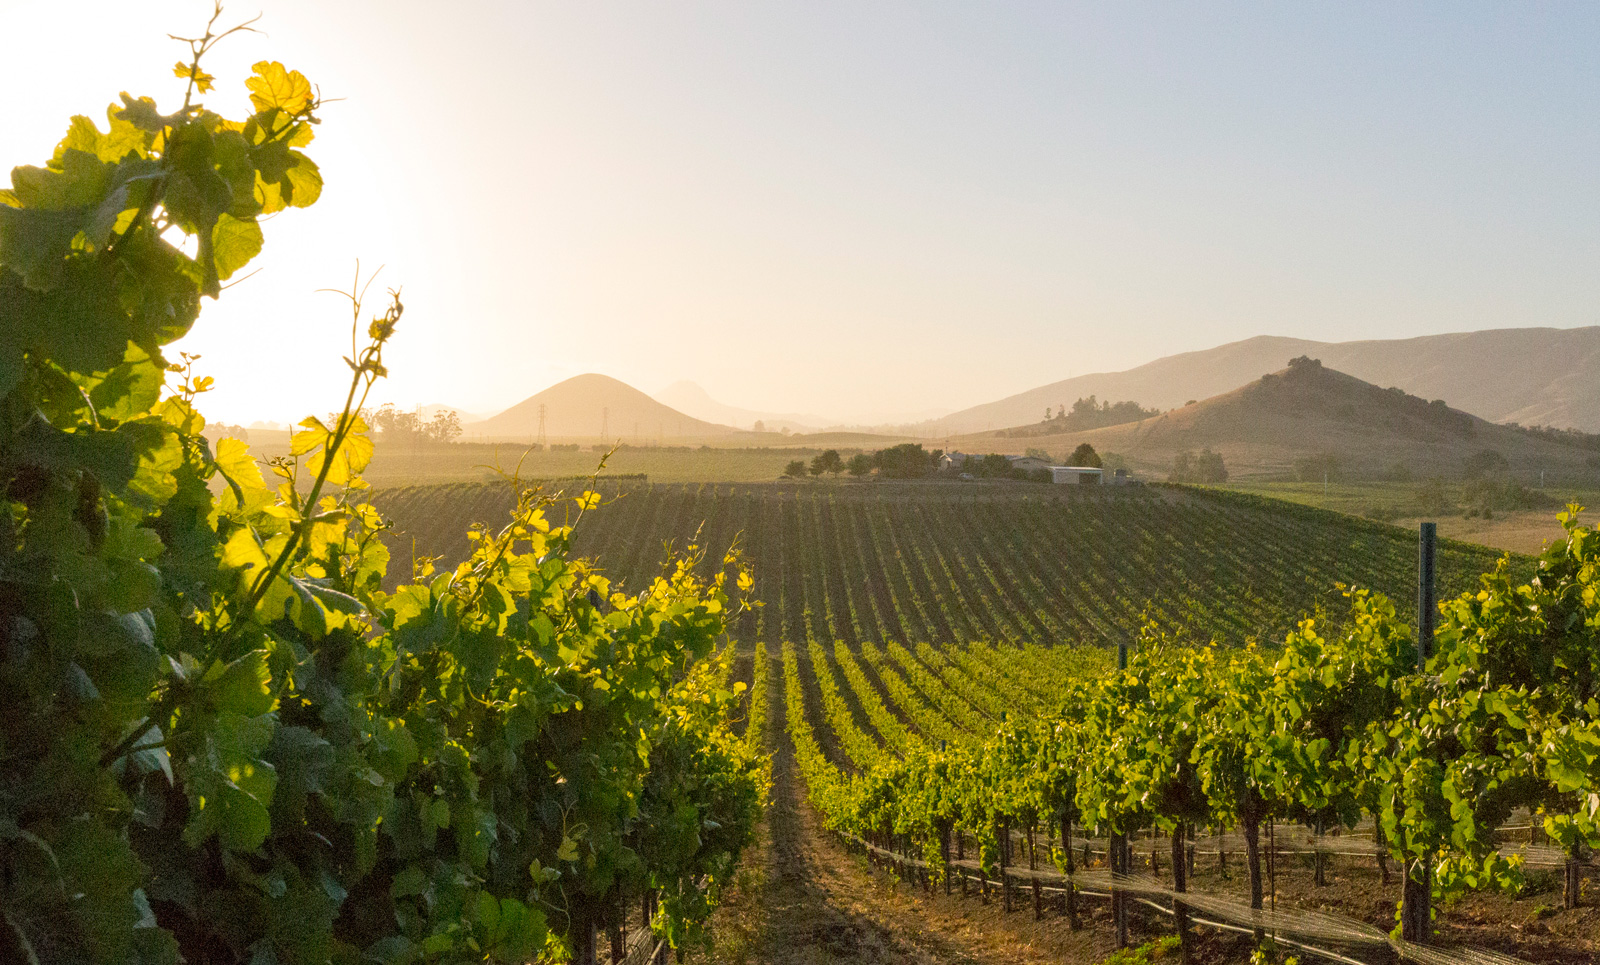 Vineyard at dawn, showing vines in the morning light with hills in the background